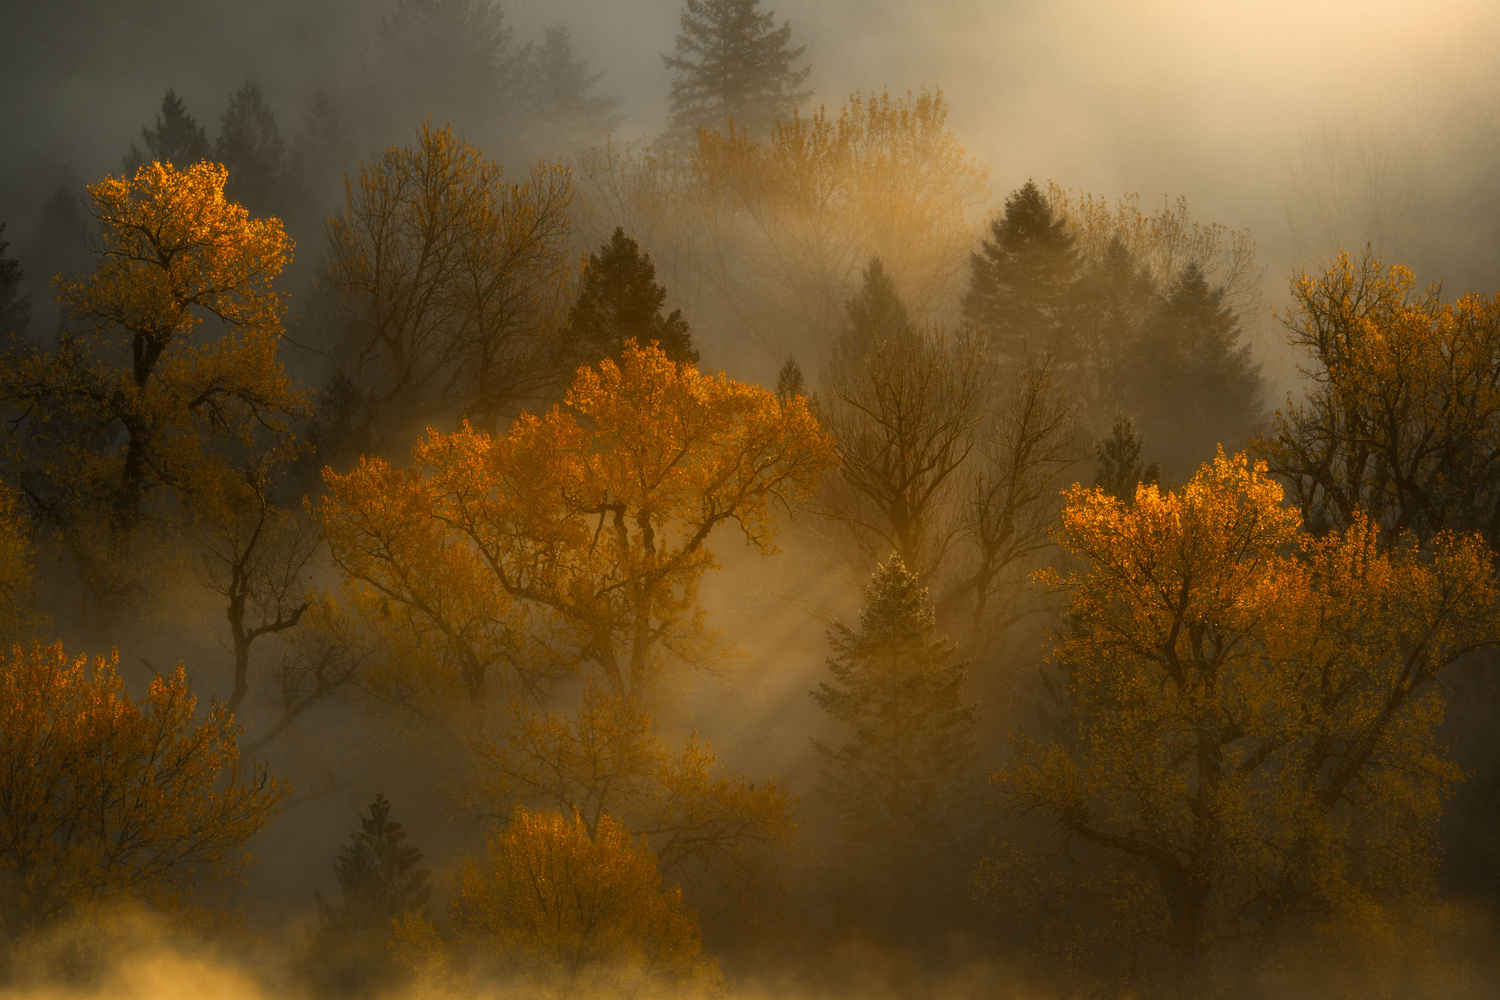 Trees of Gold by John Byrn